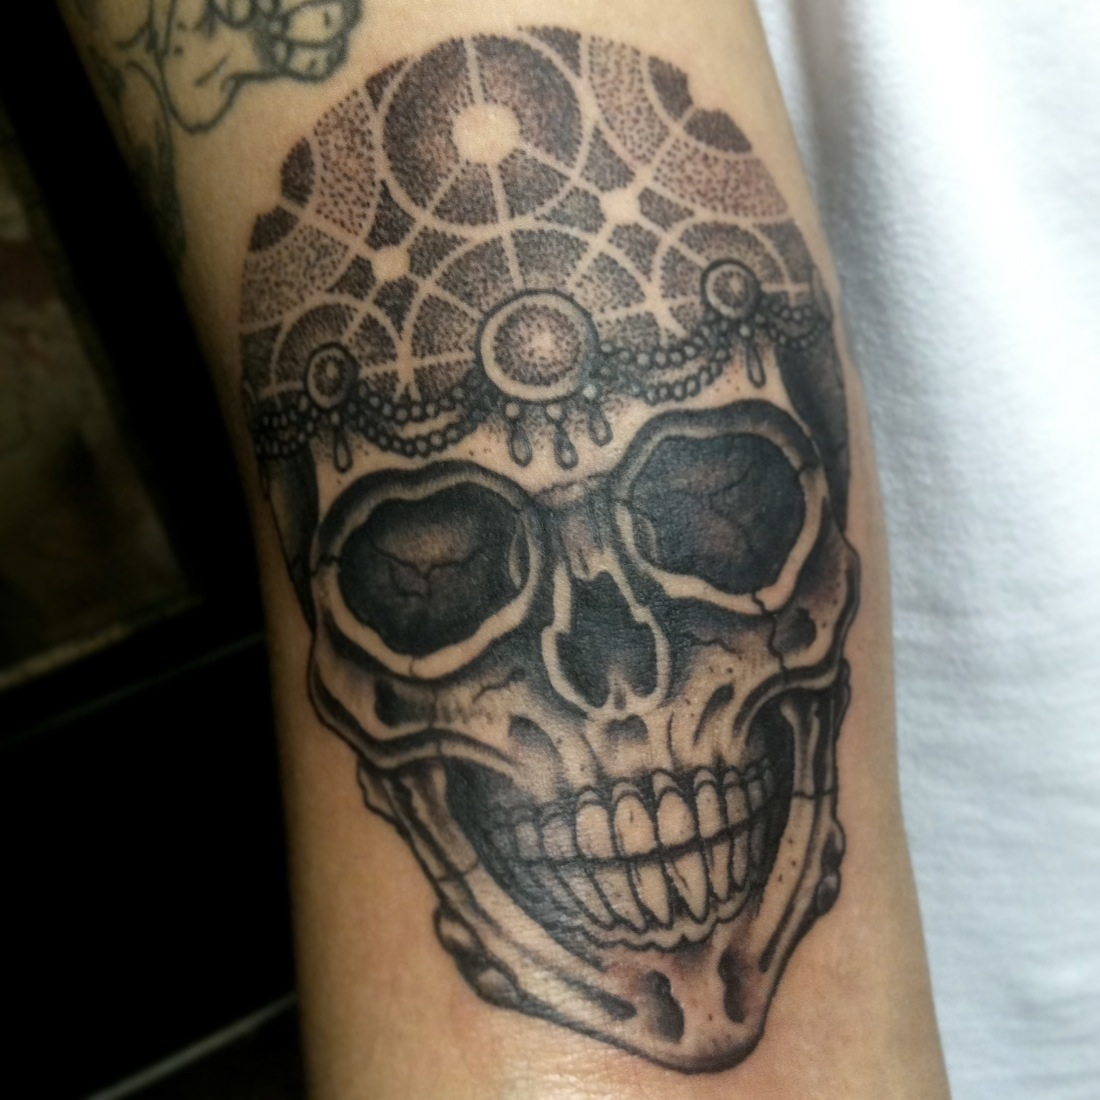 Tattoo For Men On Arm: Women Fashion And Lifestyles